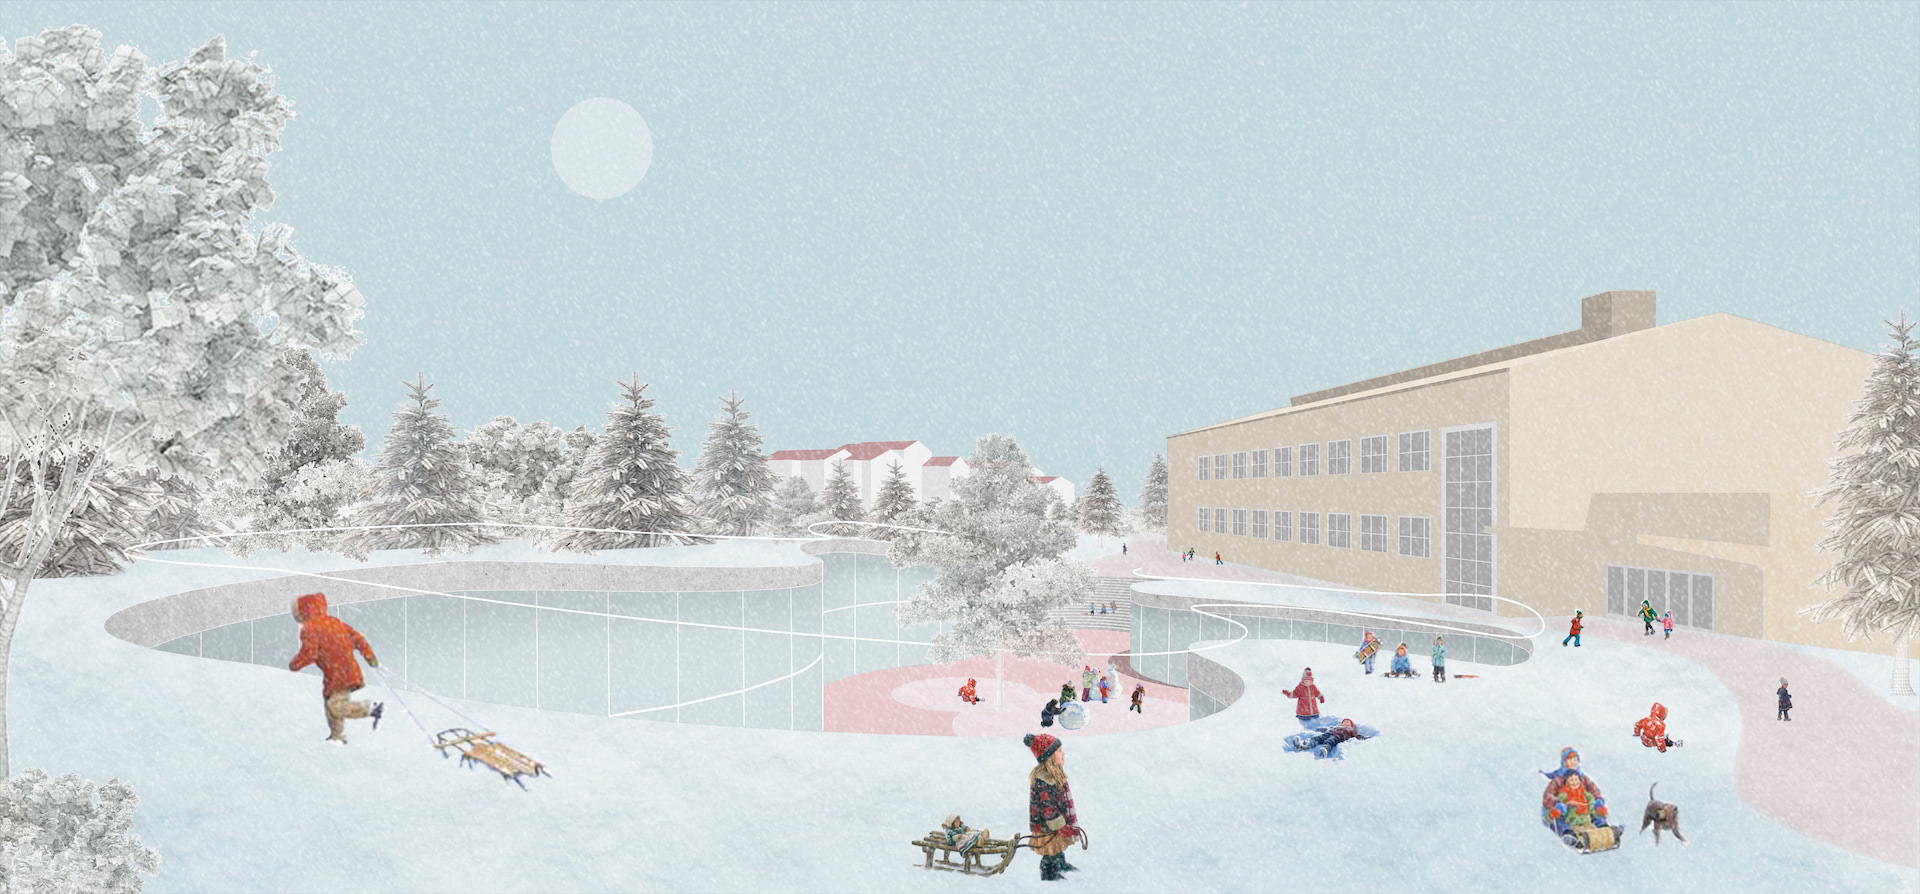 Taking cues from Kerava's historical, cultural and educational context, we designed three spatial scenarios for the expansion and redevelopment of Kerava Central School. Situated in the heart of the city, we looked for ways of highlighting the school's past, present and future while simultaneously increasing its presence in the community. Each design is adaptable and open to accommodate the changing, diverse needs of educators and students and includes a large, lively playground that provides sunlight and access to outdoor (learning) activities.